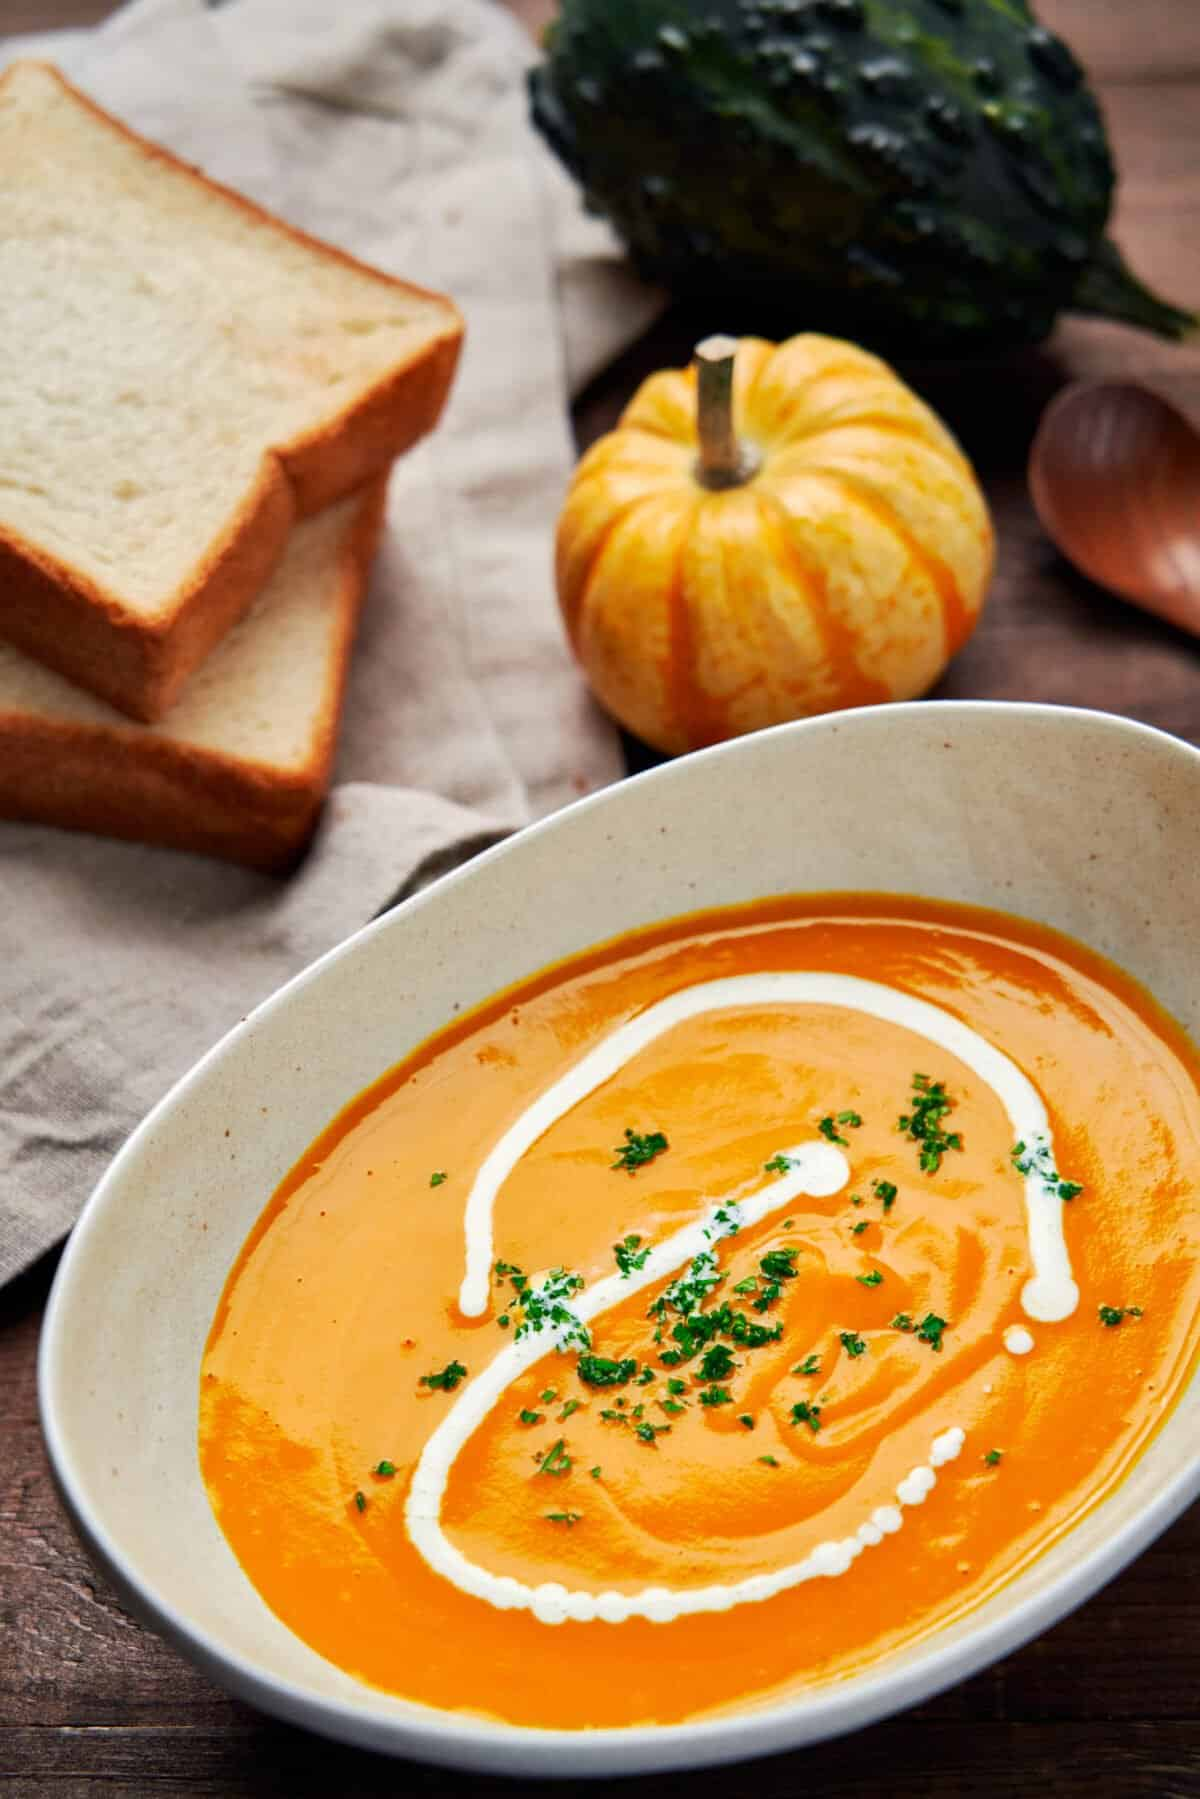 Rich, hearty, and packed with flavor, this easy kabocha squash soup is the perfect comfort food for a chilly autumn day.